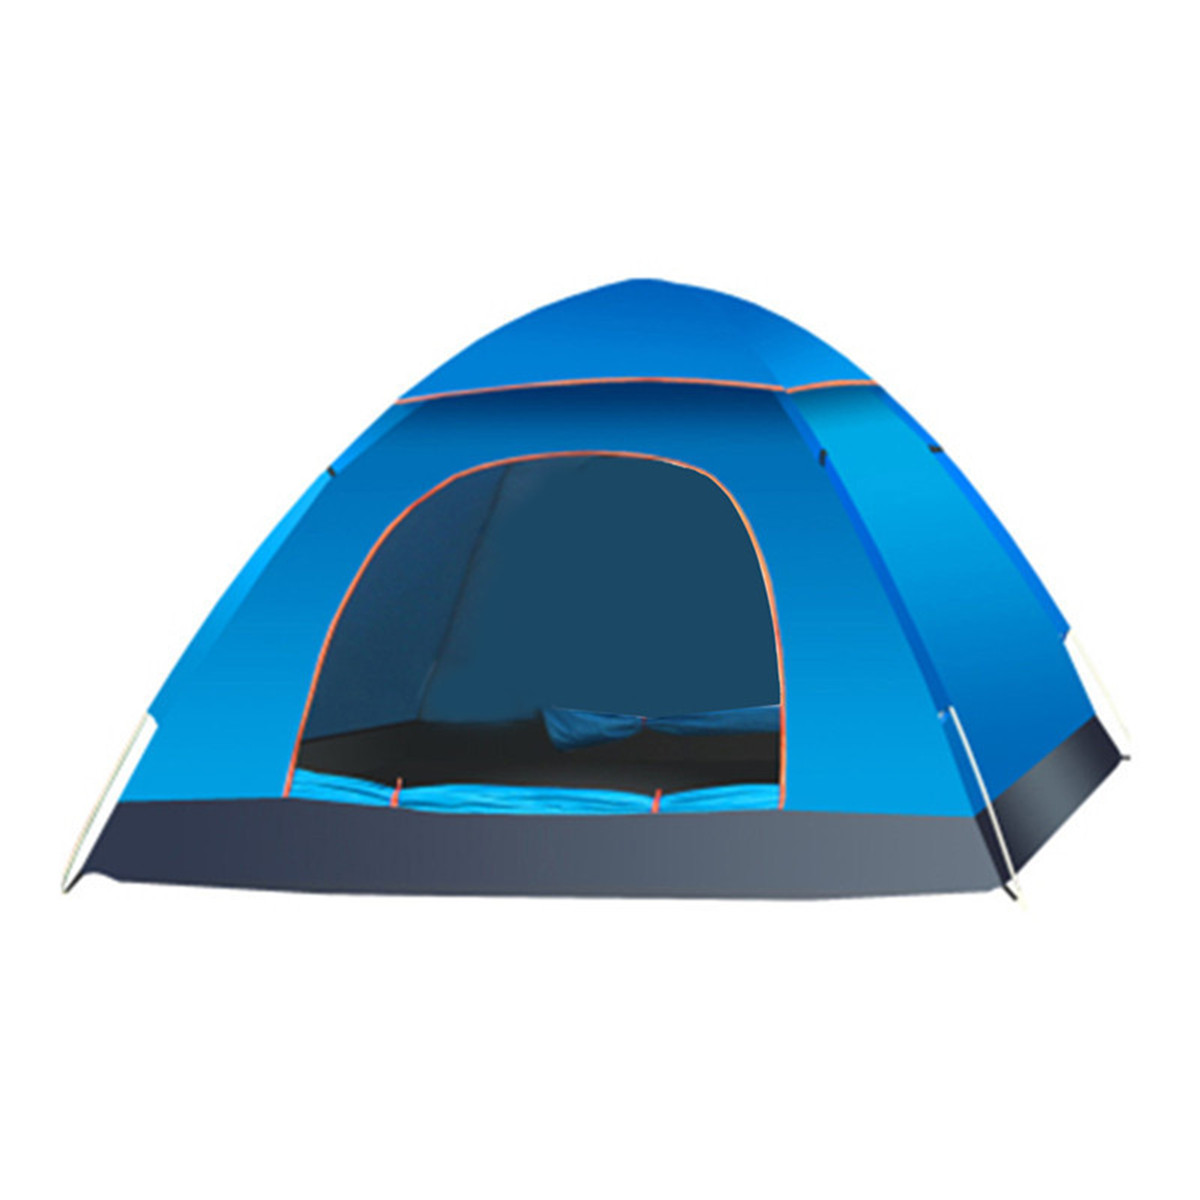 outdoor 2 3 people camping tent waterproof automatic quick pop up uv sunshade shelter. Black Bedroom Furniture Sets. Home Design Ideas